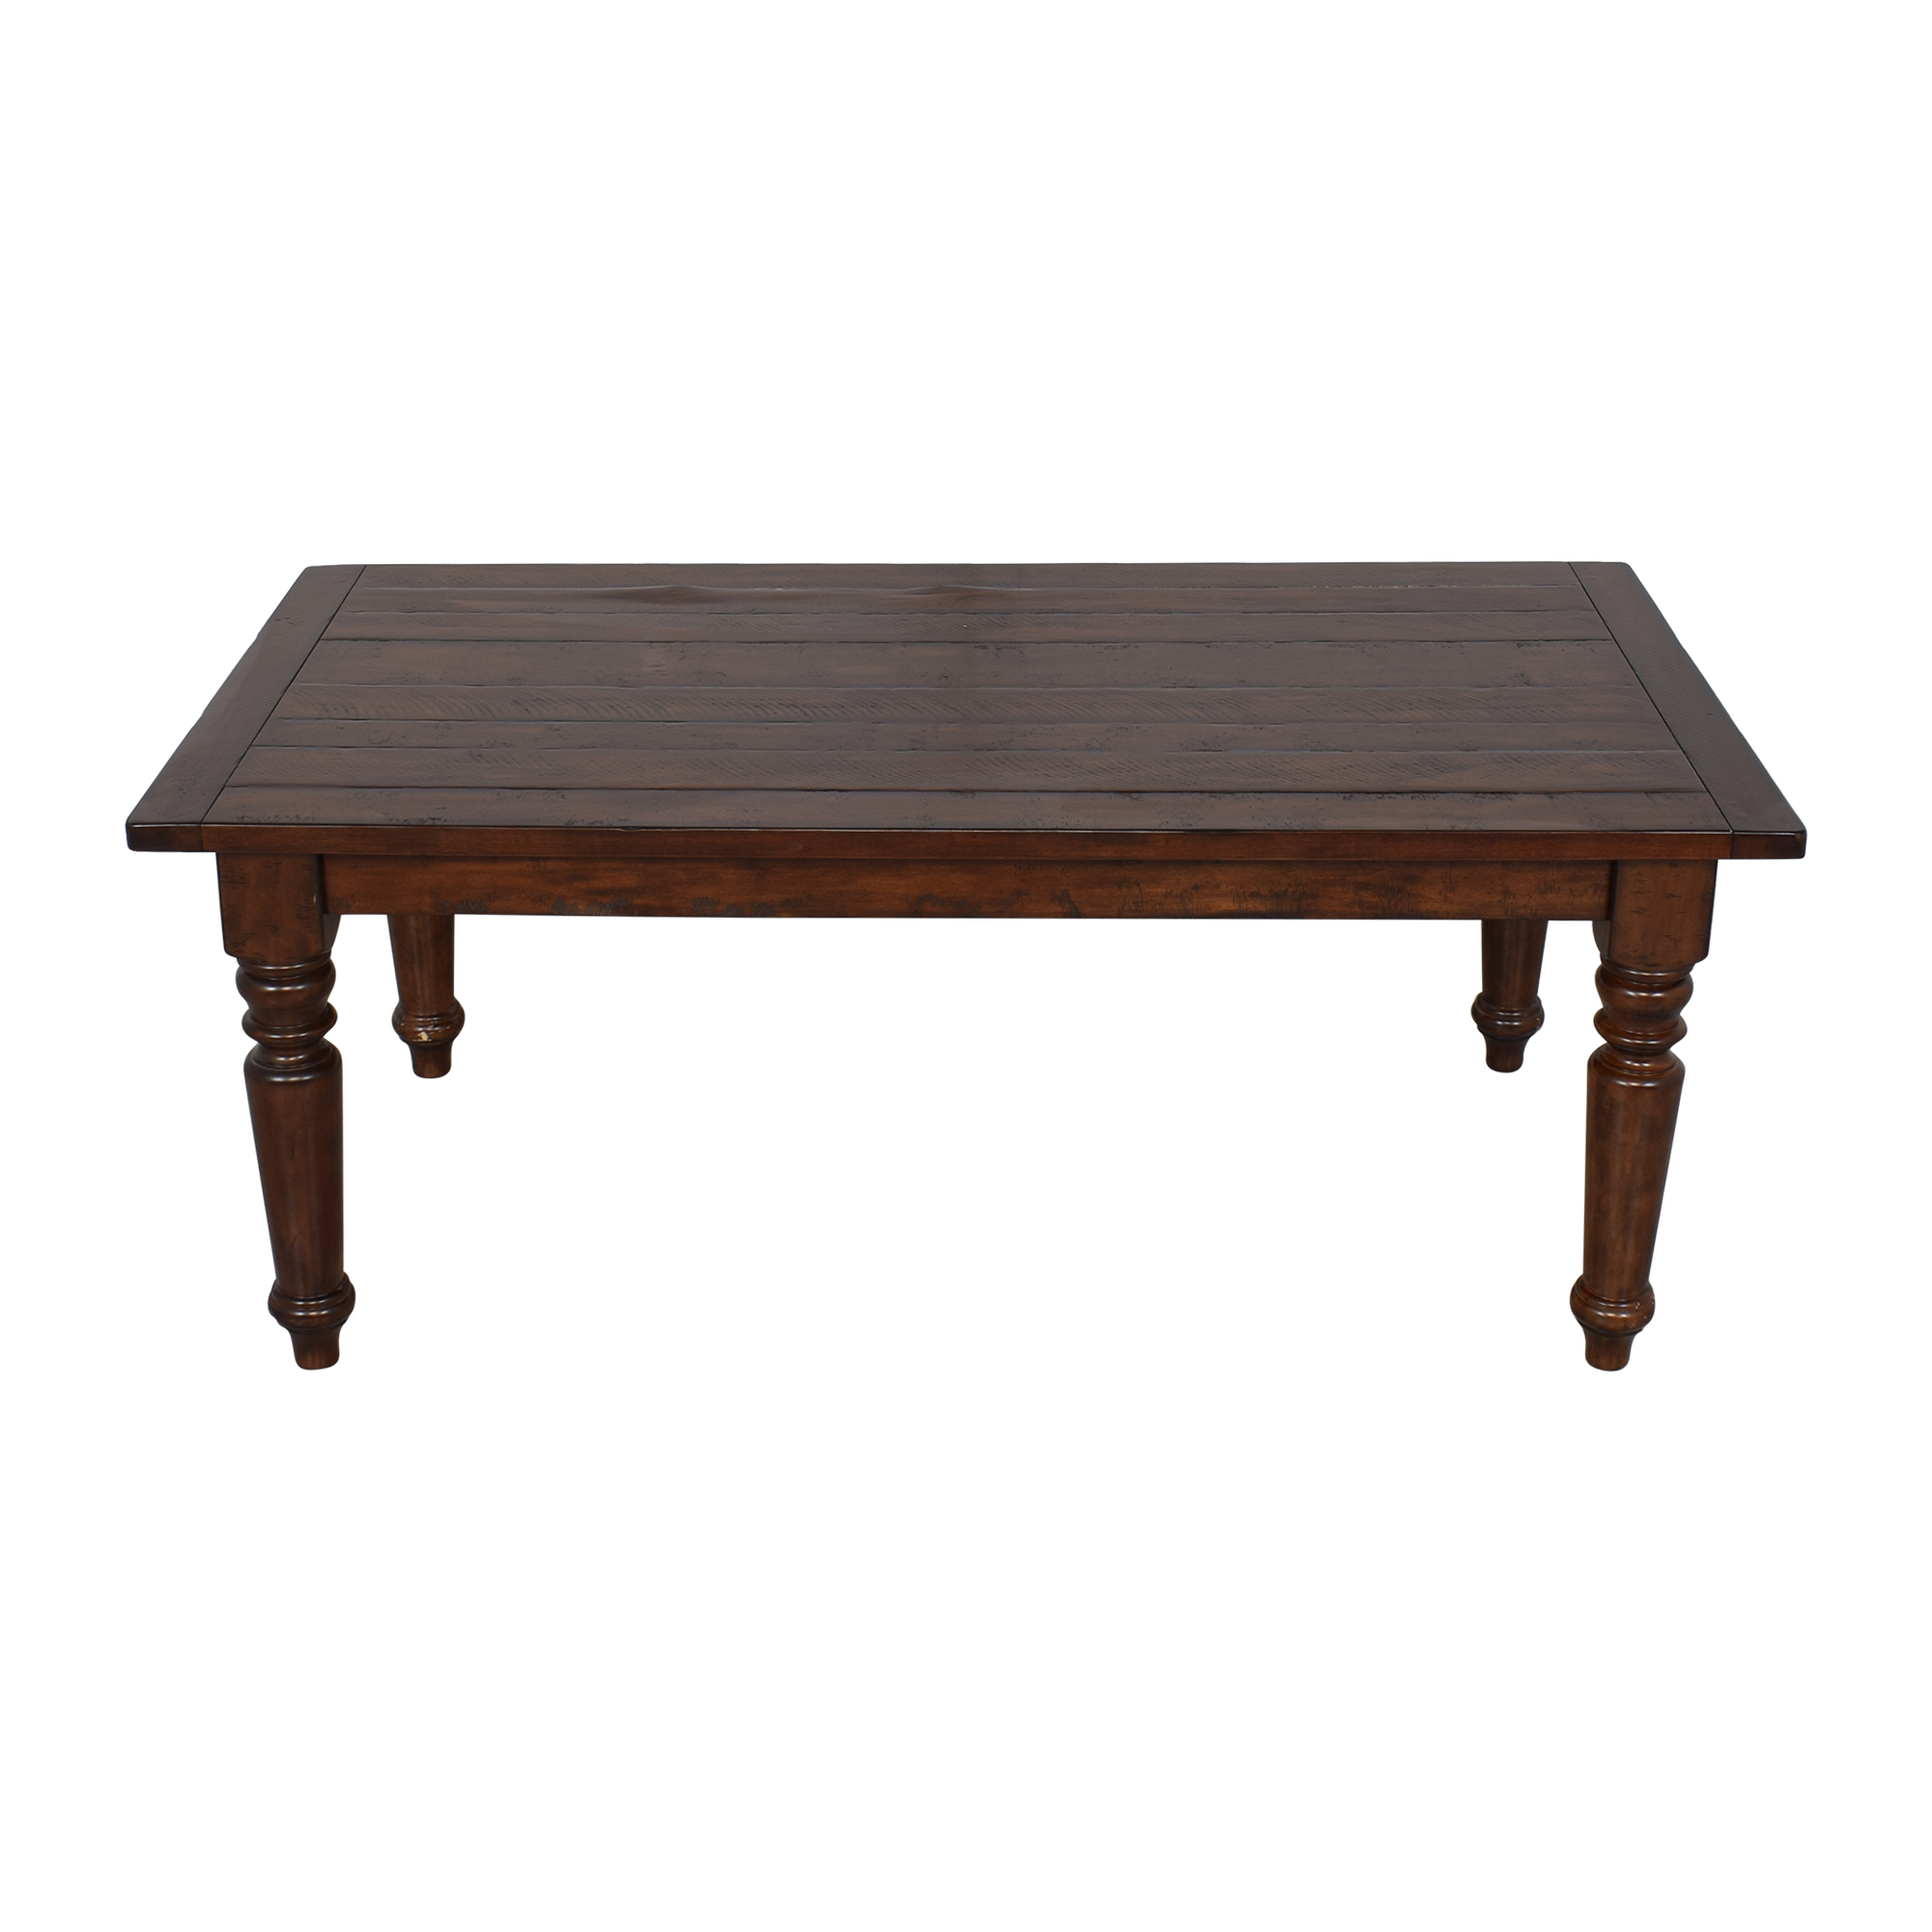 Pottery Barn Pottery Barn Sumner Extending Dining Table for sale